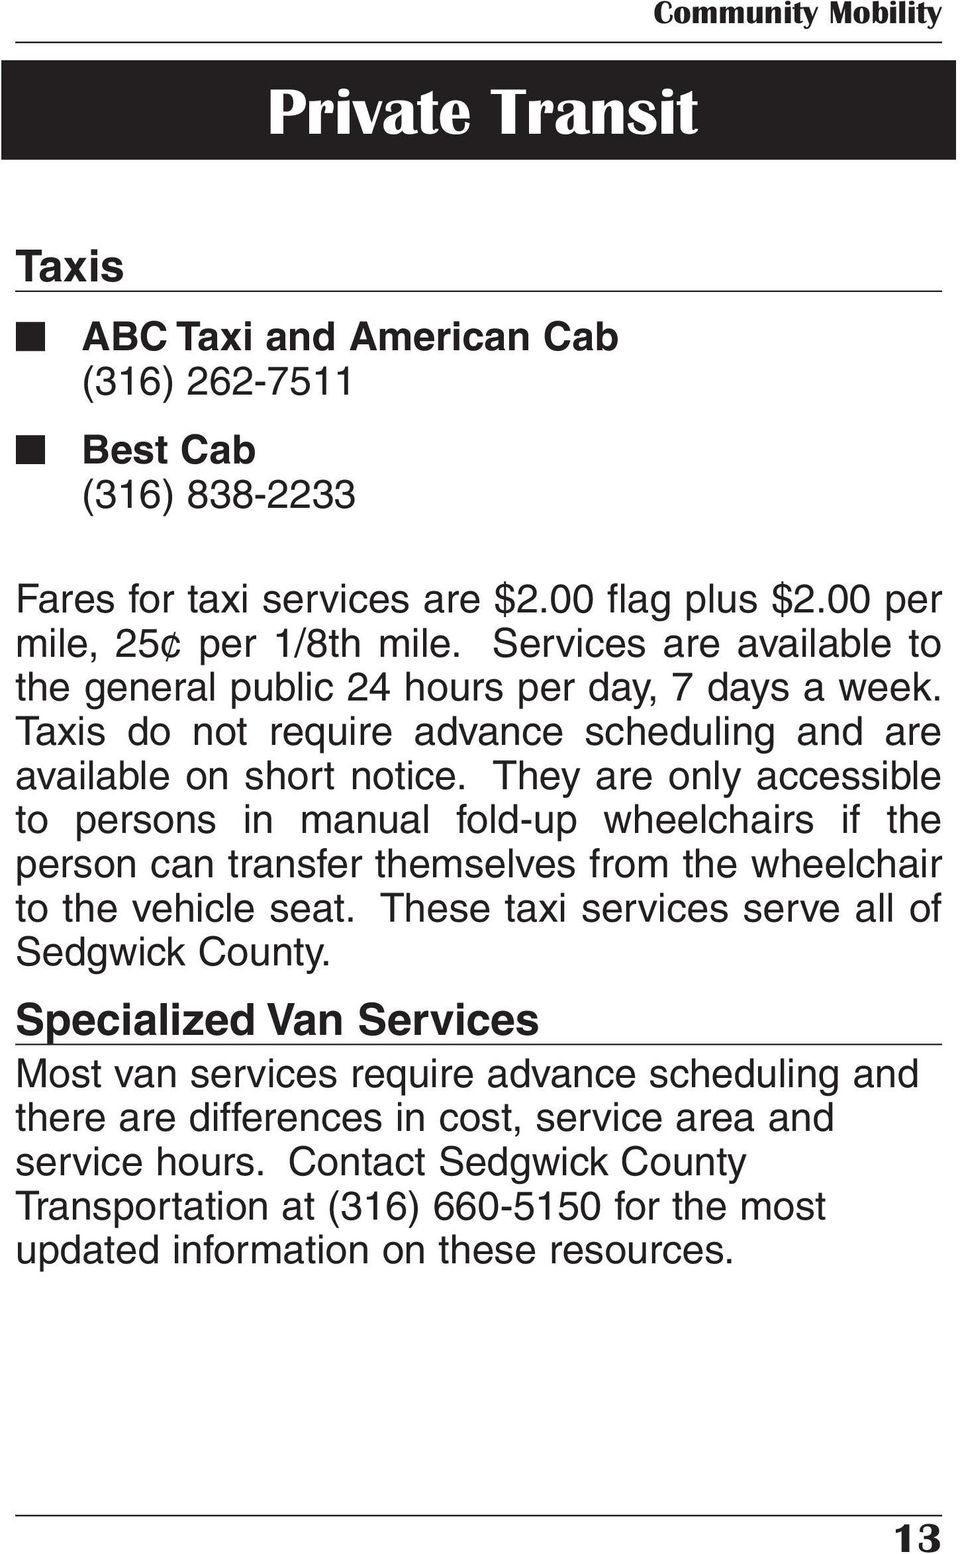 They are only accessible to persons in manual fold-up wheelchairs if the person can transfer themselves from the wheelchair to the vehicle seat. These taxi services serve all of Sedgwick County.